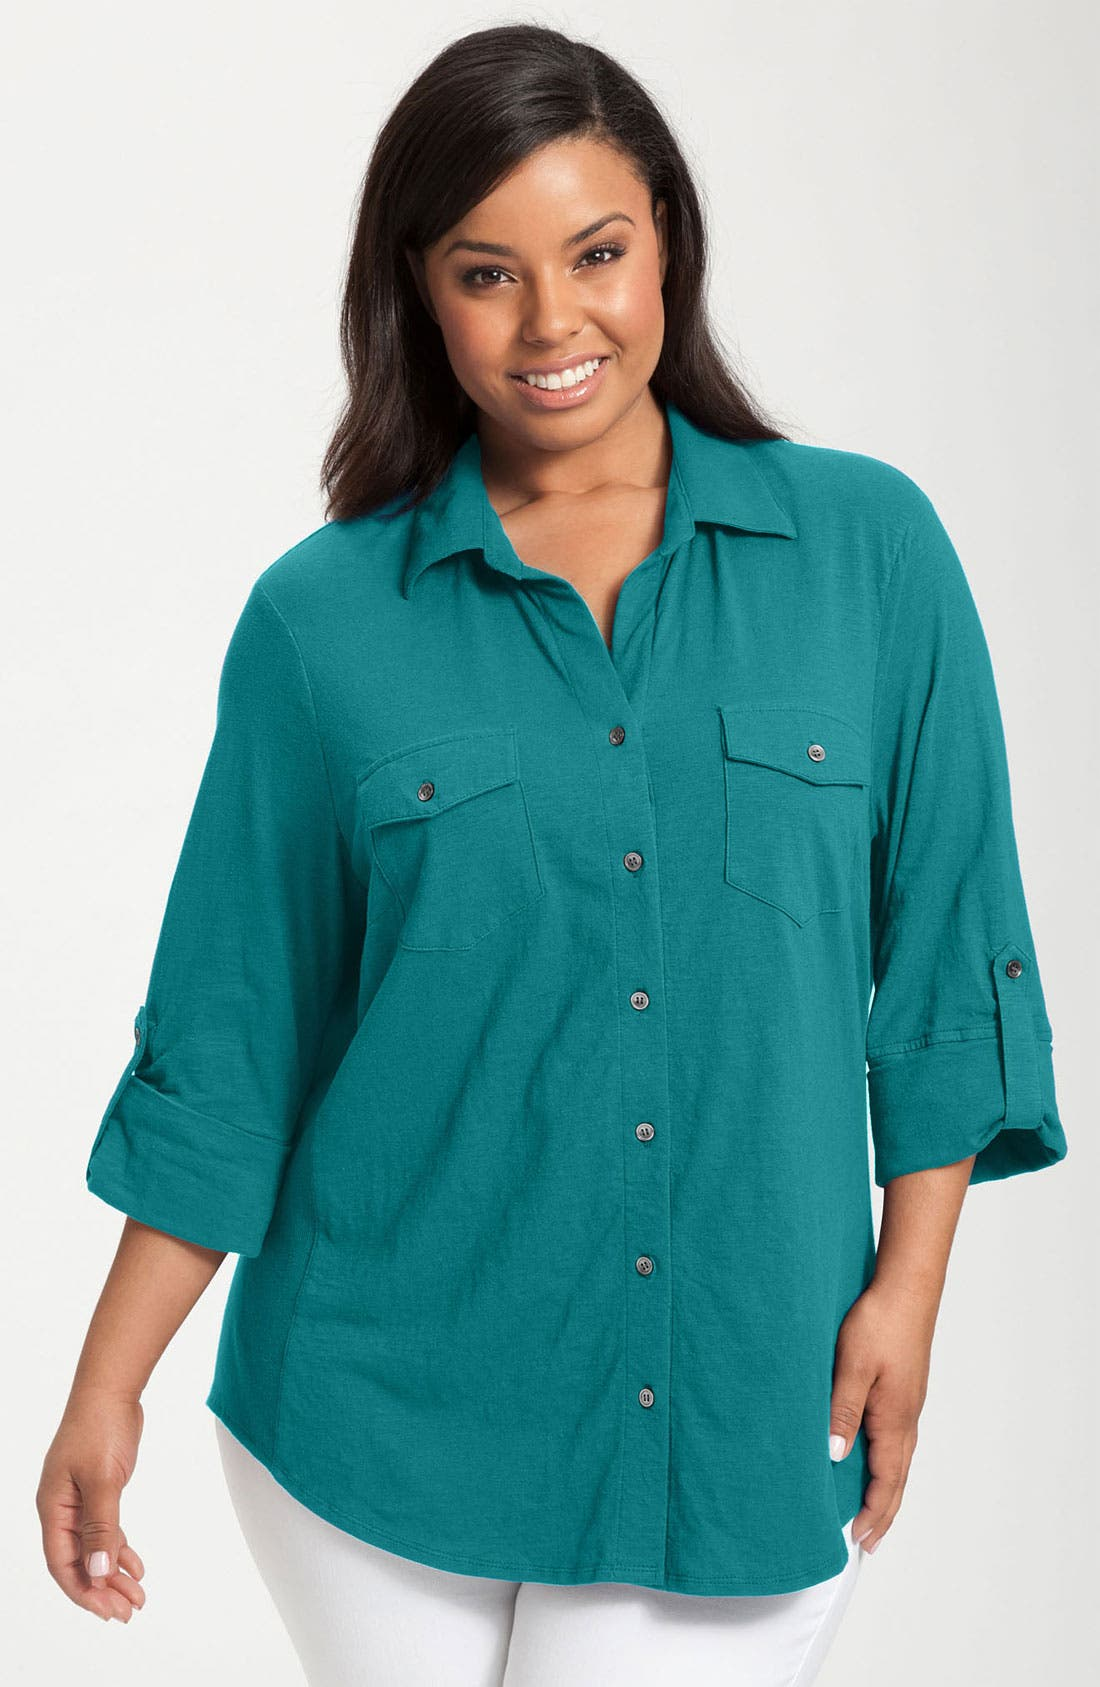 Alternate Image 1 Selected - Sandra Ingrish Roll Sleeve Knit Shirt (Plus Size)